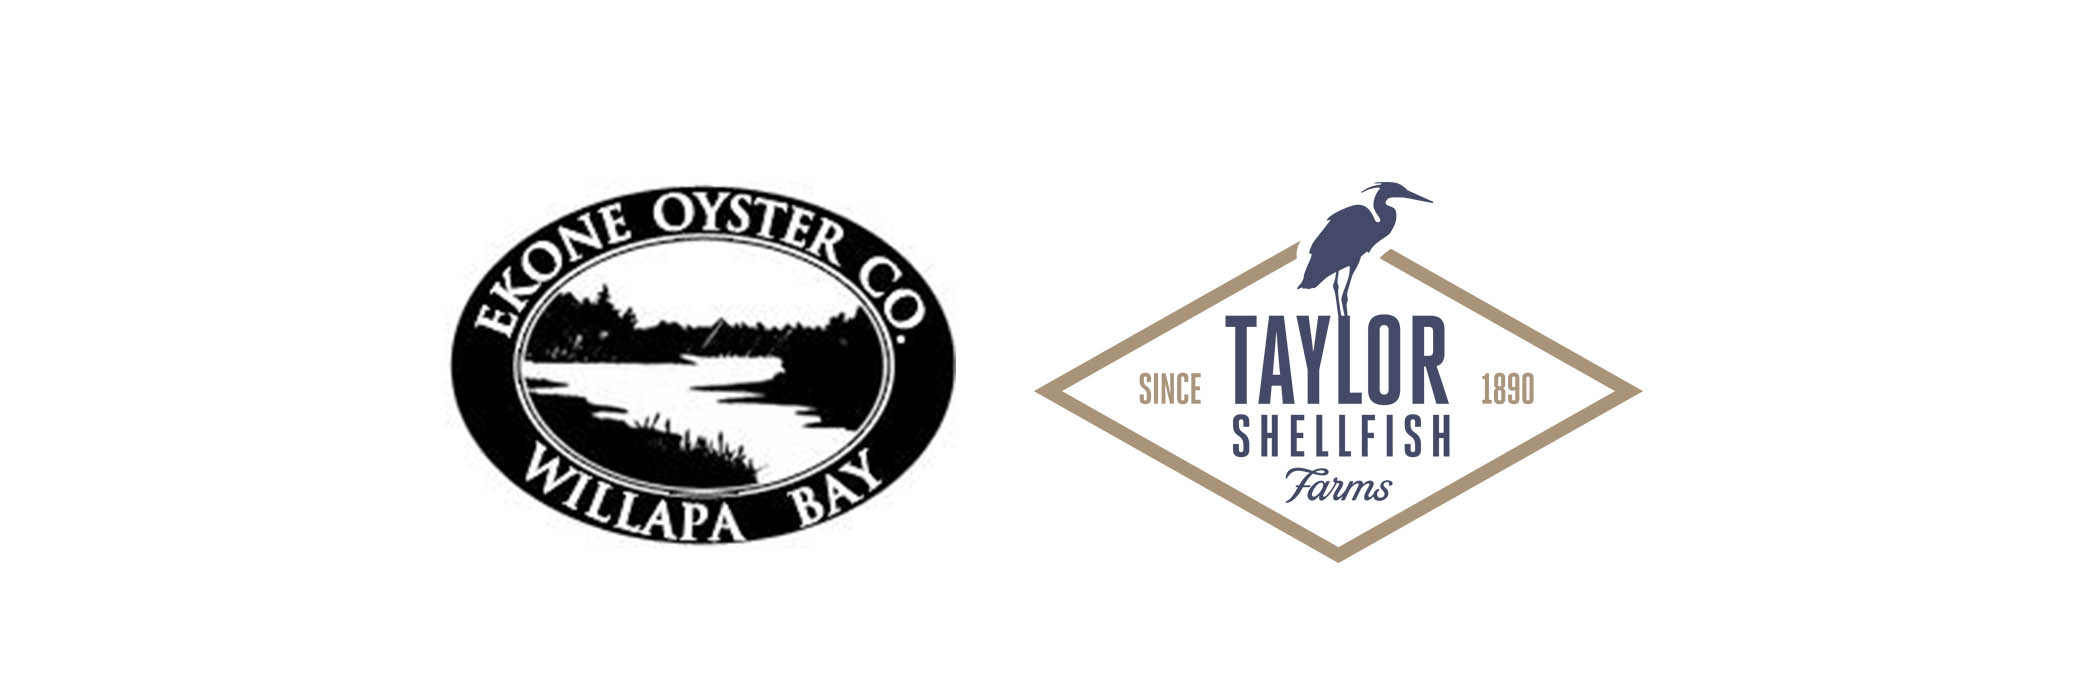 Ekone Co, now Taylor Shellfish Farms